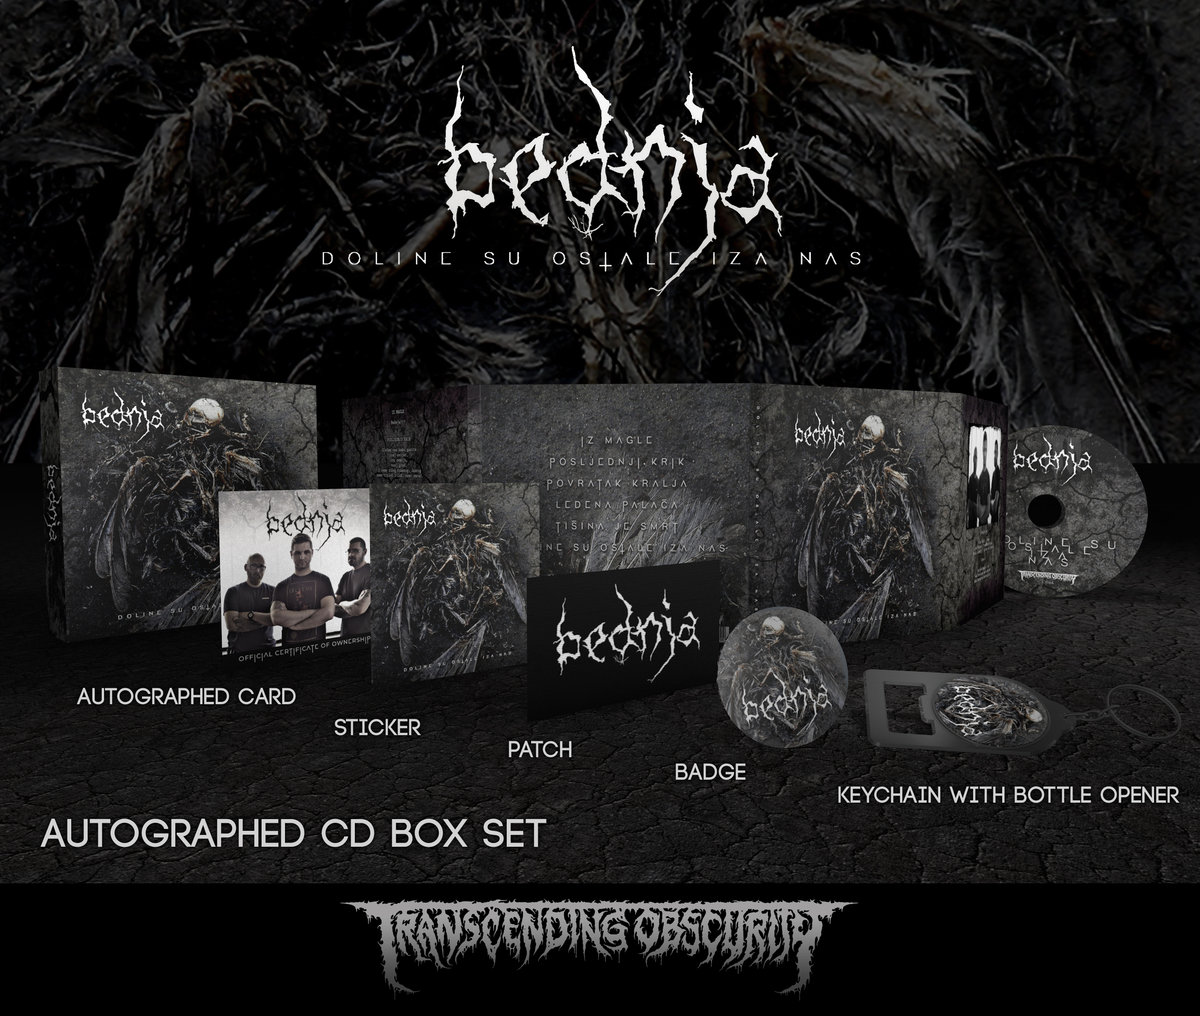 BEDNJA Autographed CD Box Set (Limited to 100)